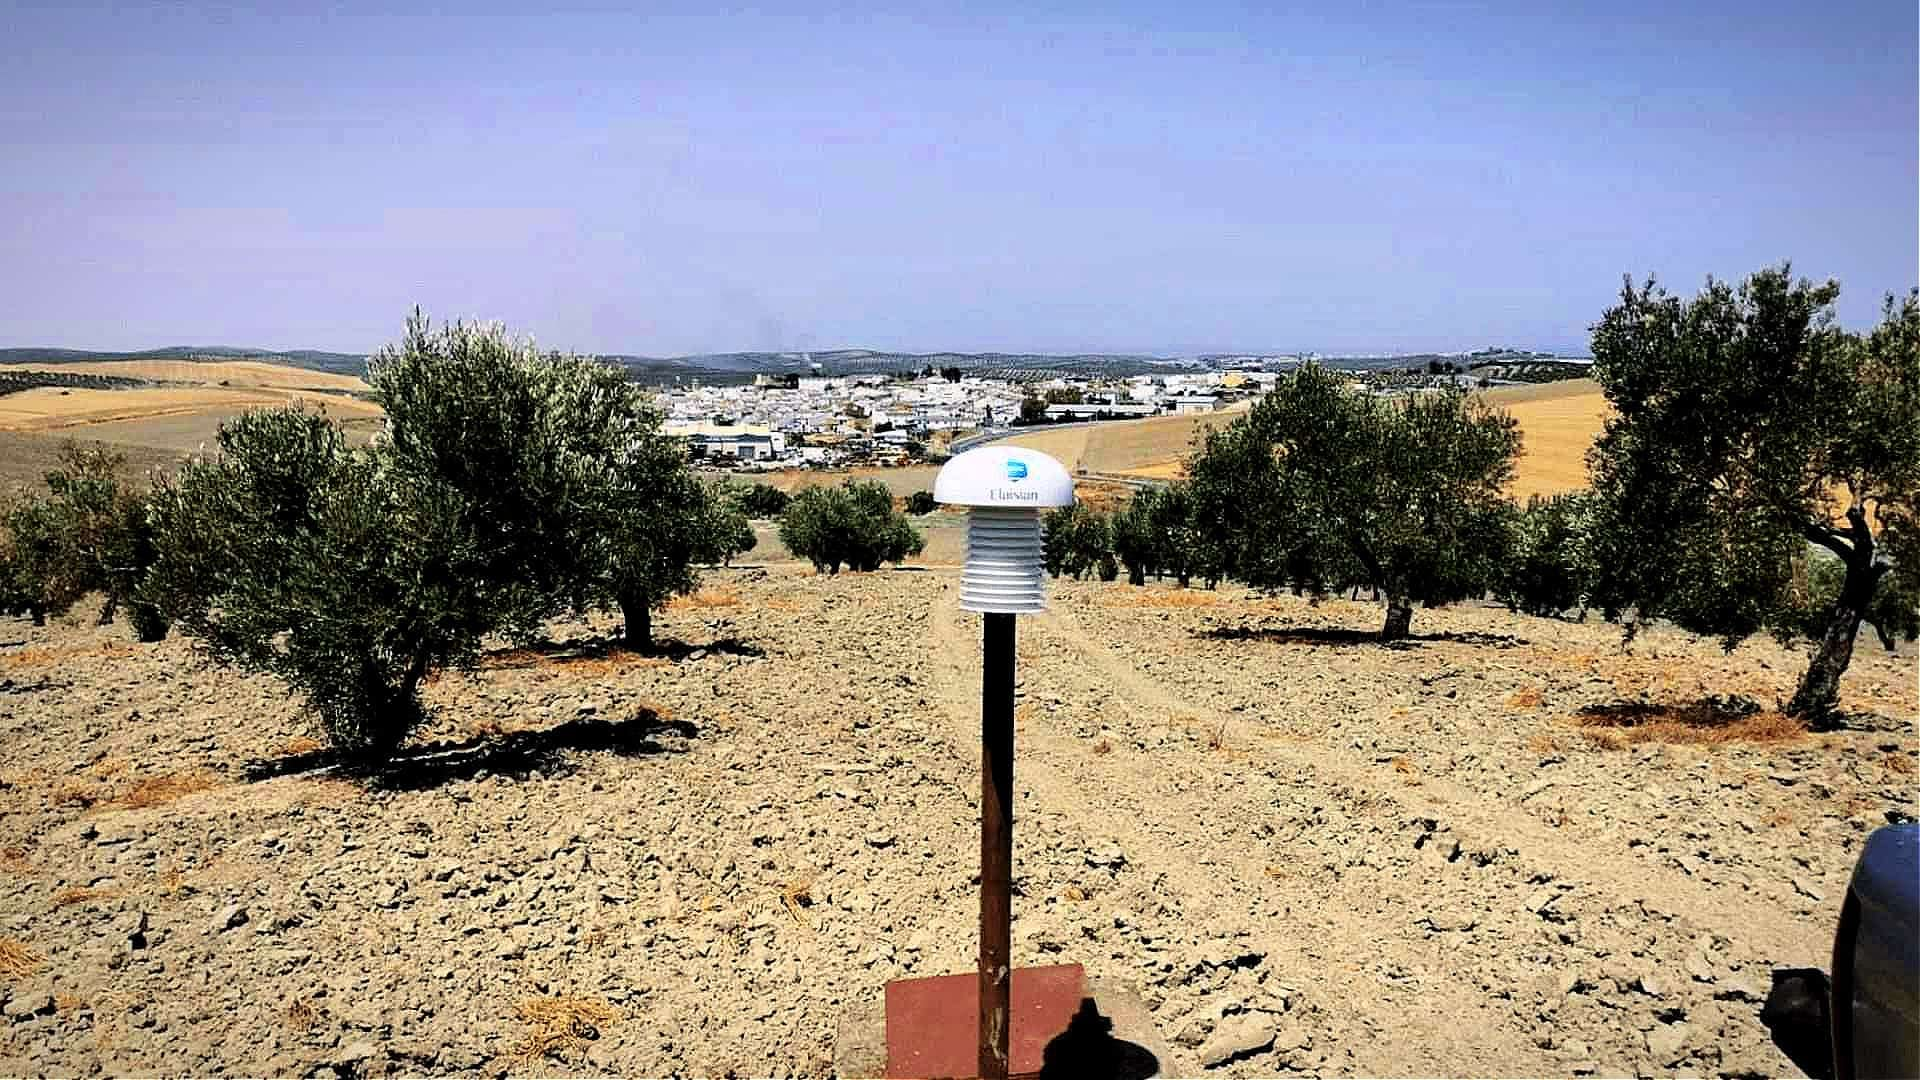 briefs-production-puglia-invests-in-early-detection-of-olive-tree-diseases-and-pests-olive-oil-times